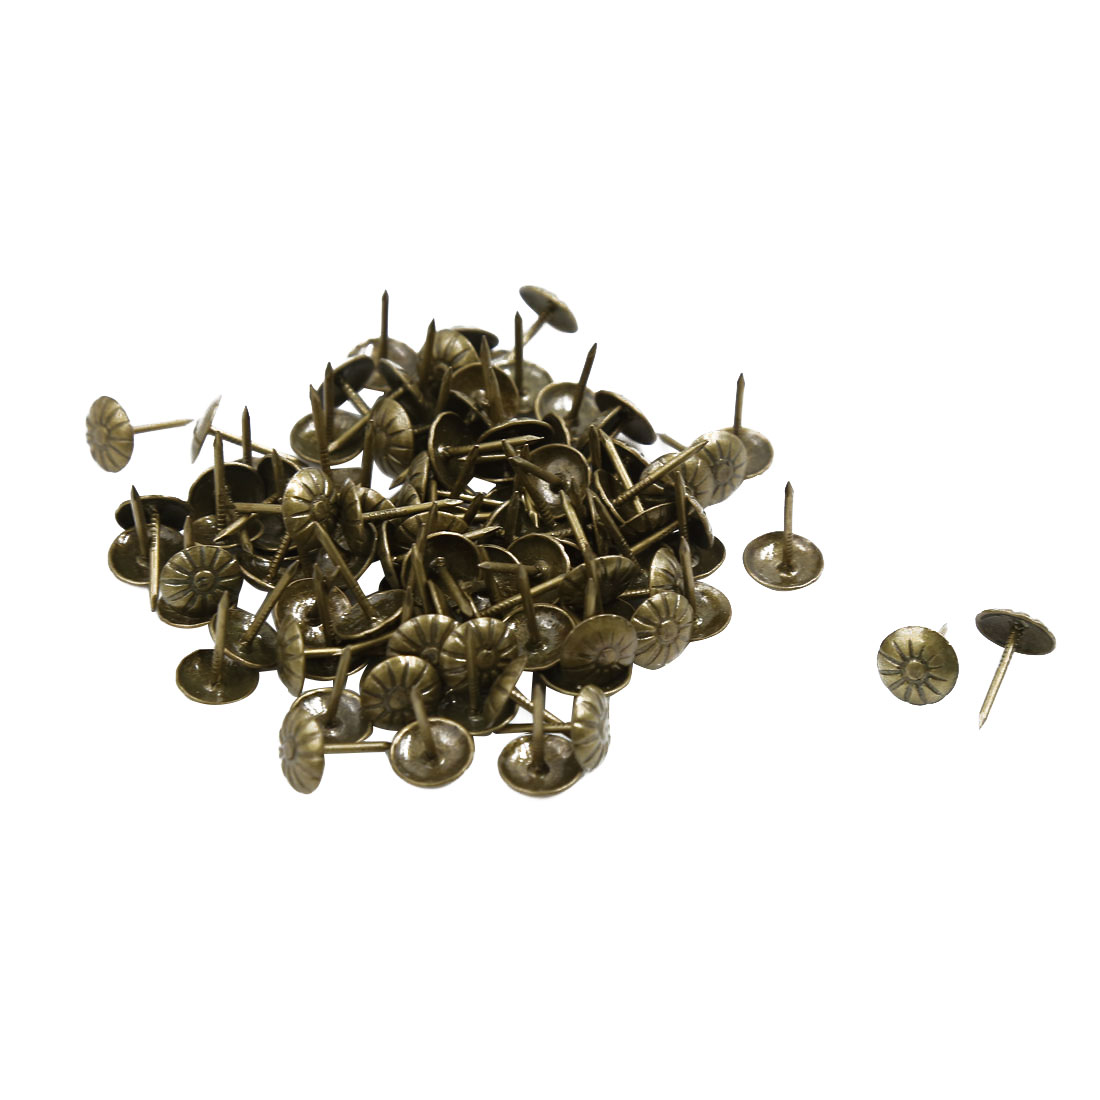 Unique Bargains 100 Pcs Flower Pattern Board Map Push Pins Thumbtacks w Steel Point Bronze Tone